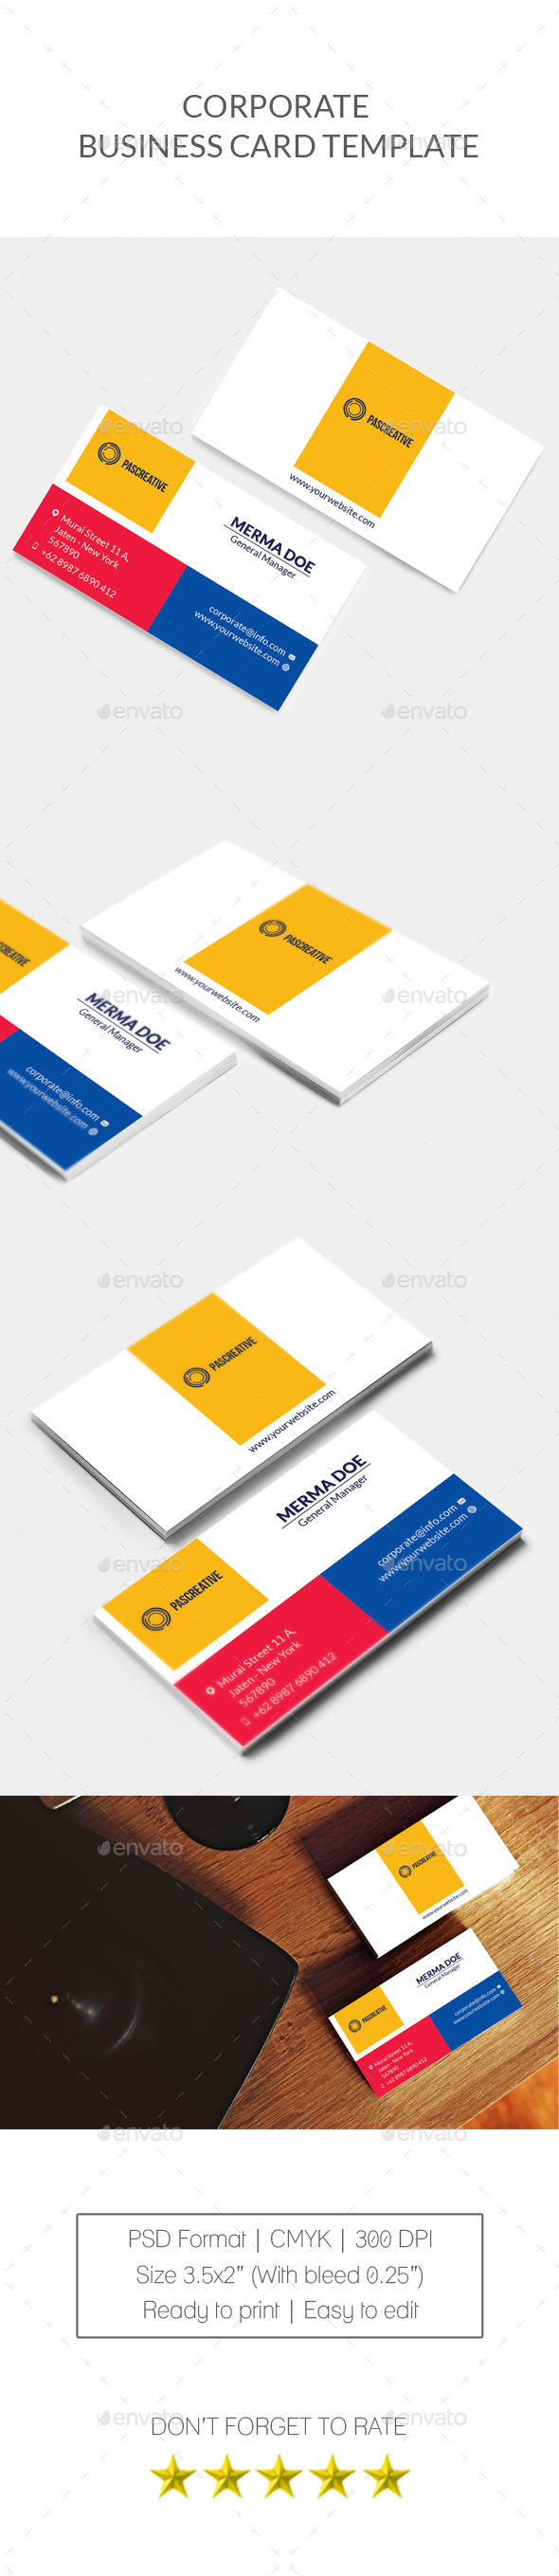 GraphicRiver Corporate Business Card Vol 2 10366002